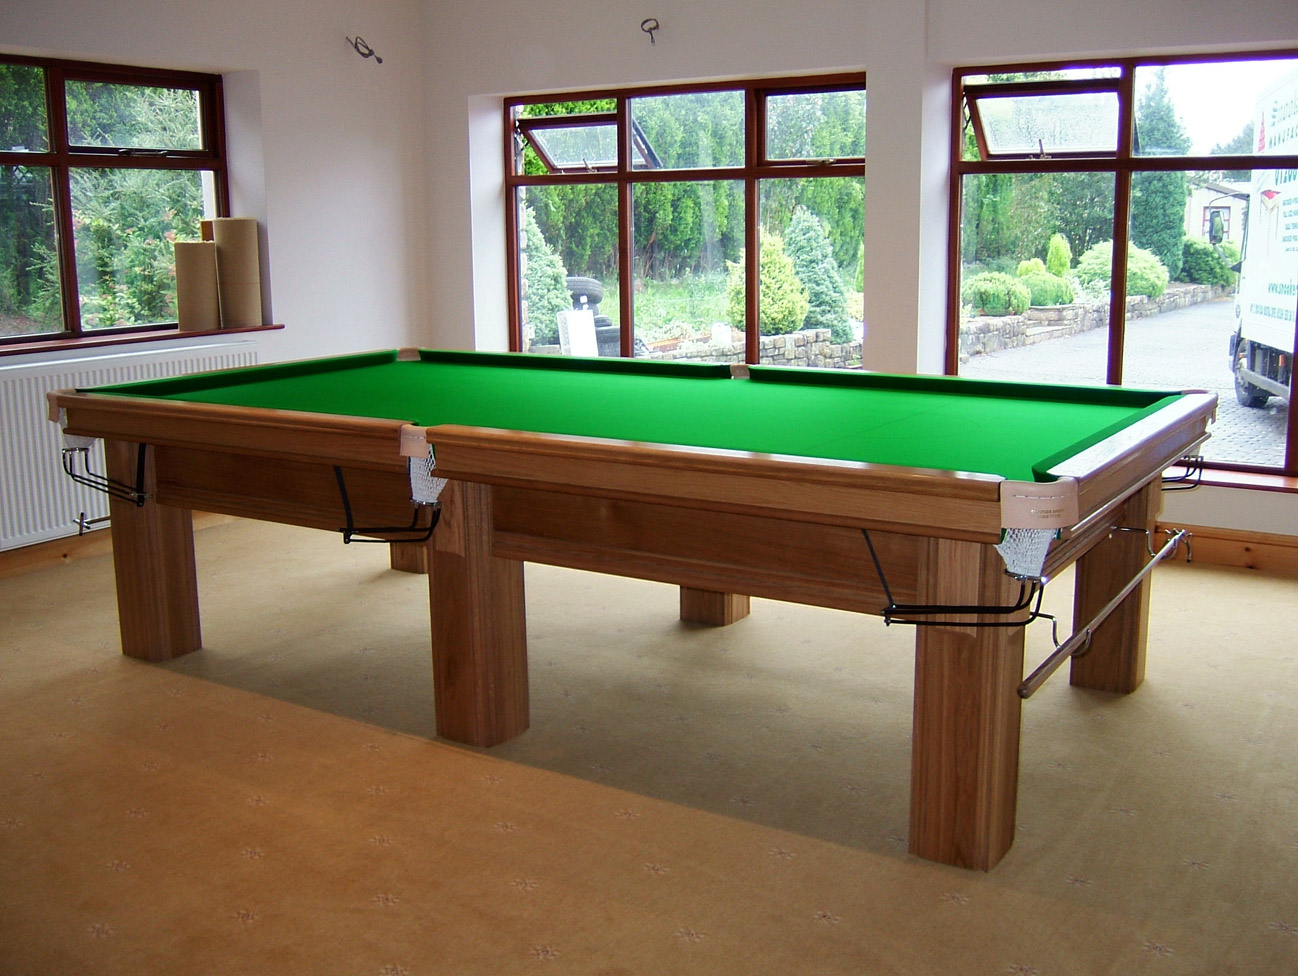 Connoisseur 10 39 x 5 39 snooker table with square legs for 10 x 5 snooker table